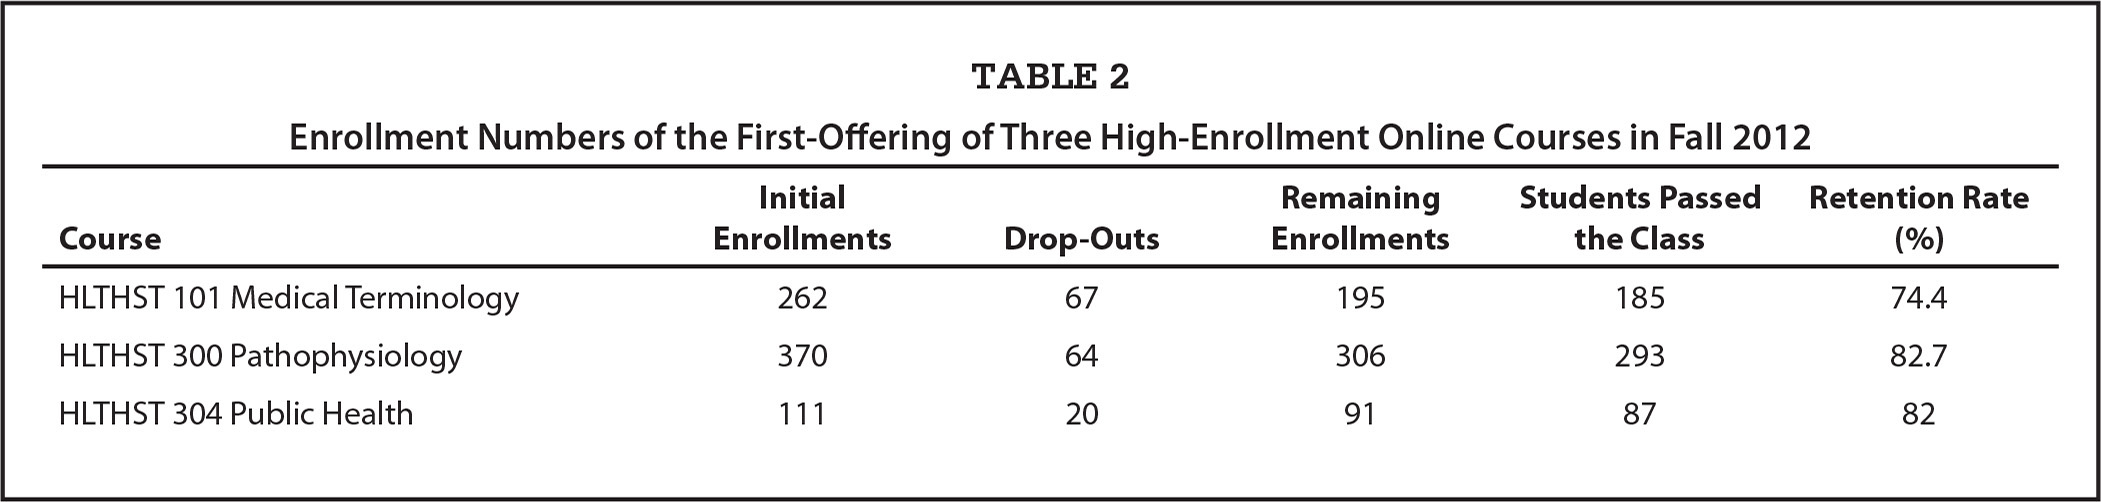 Enrollment Numbers of the First-Offering of Three High-Enrollment Online Courses in Fall 2012